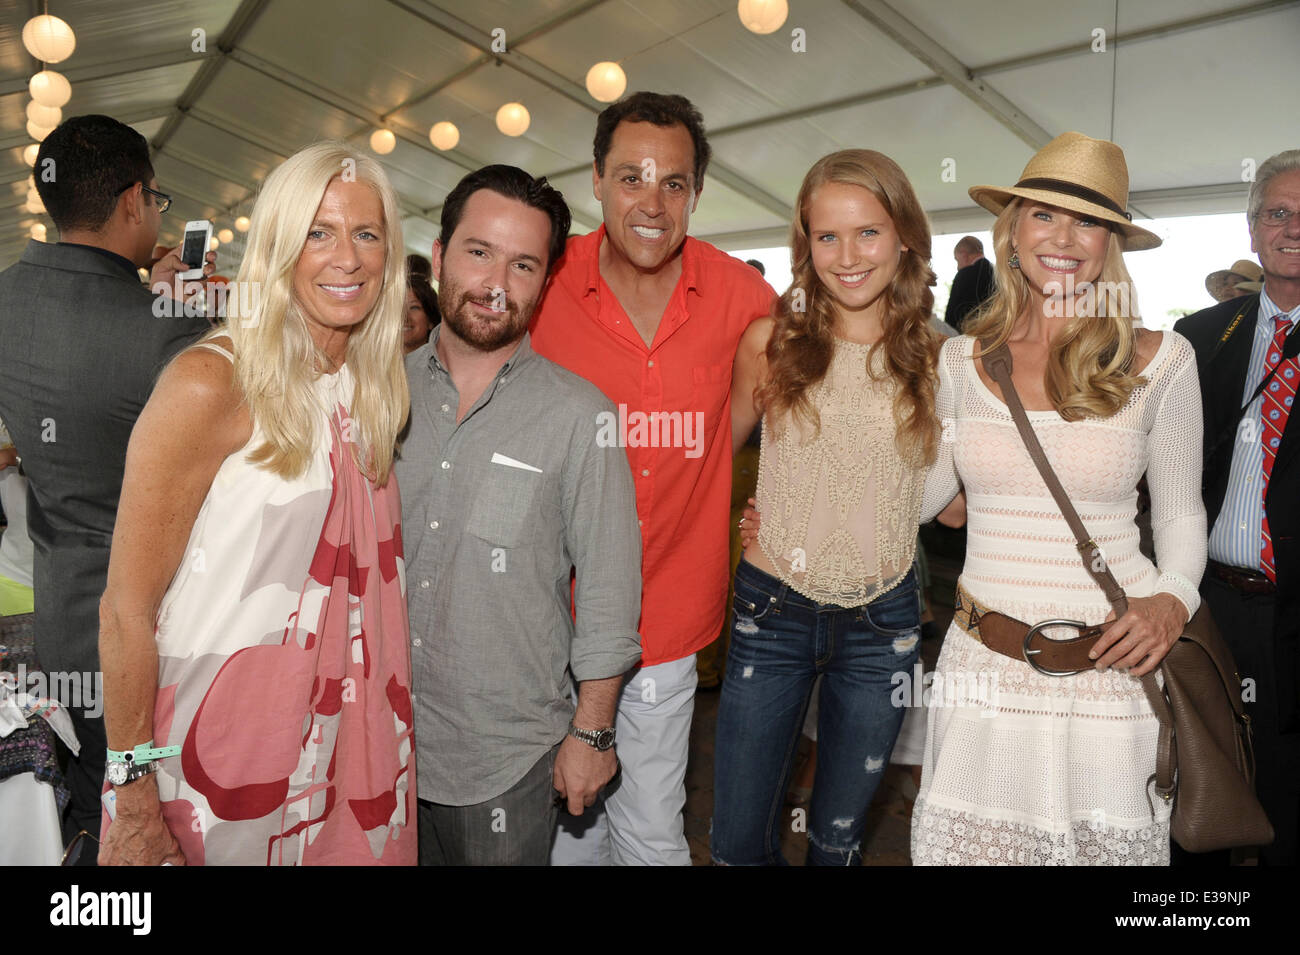 85438be23bc159 Celebrities attends the 38th Annual Hampton Classic Horseshow Featuring  Libby  Edelman